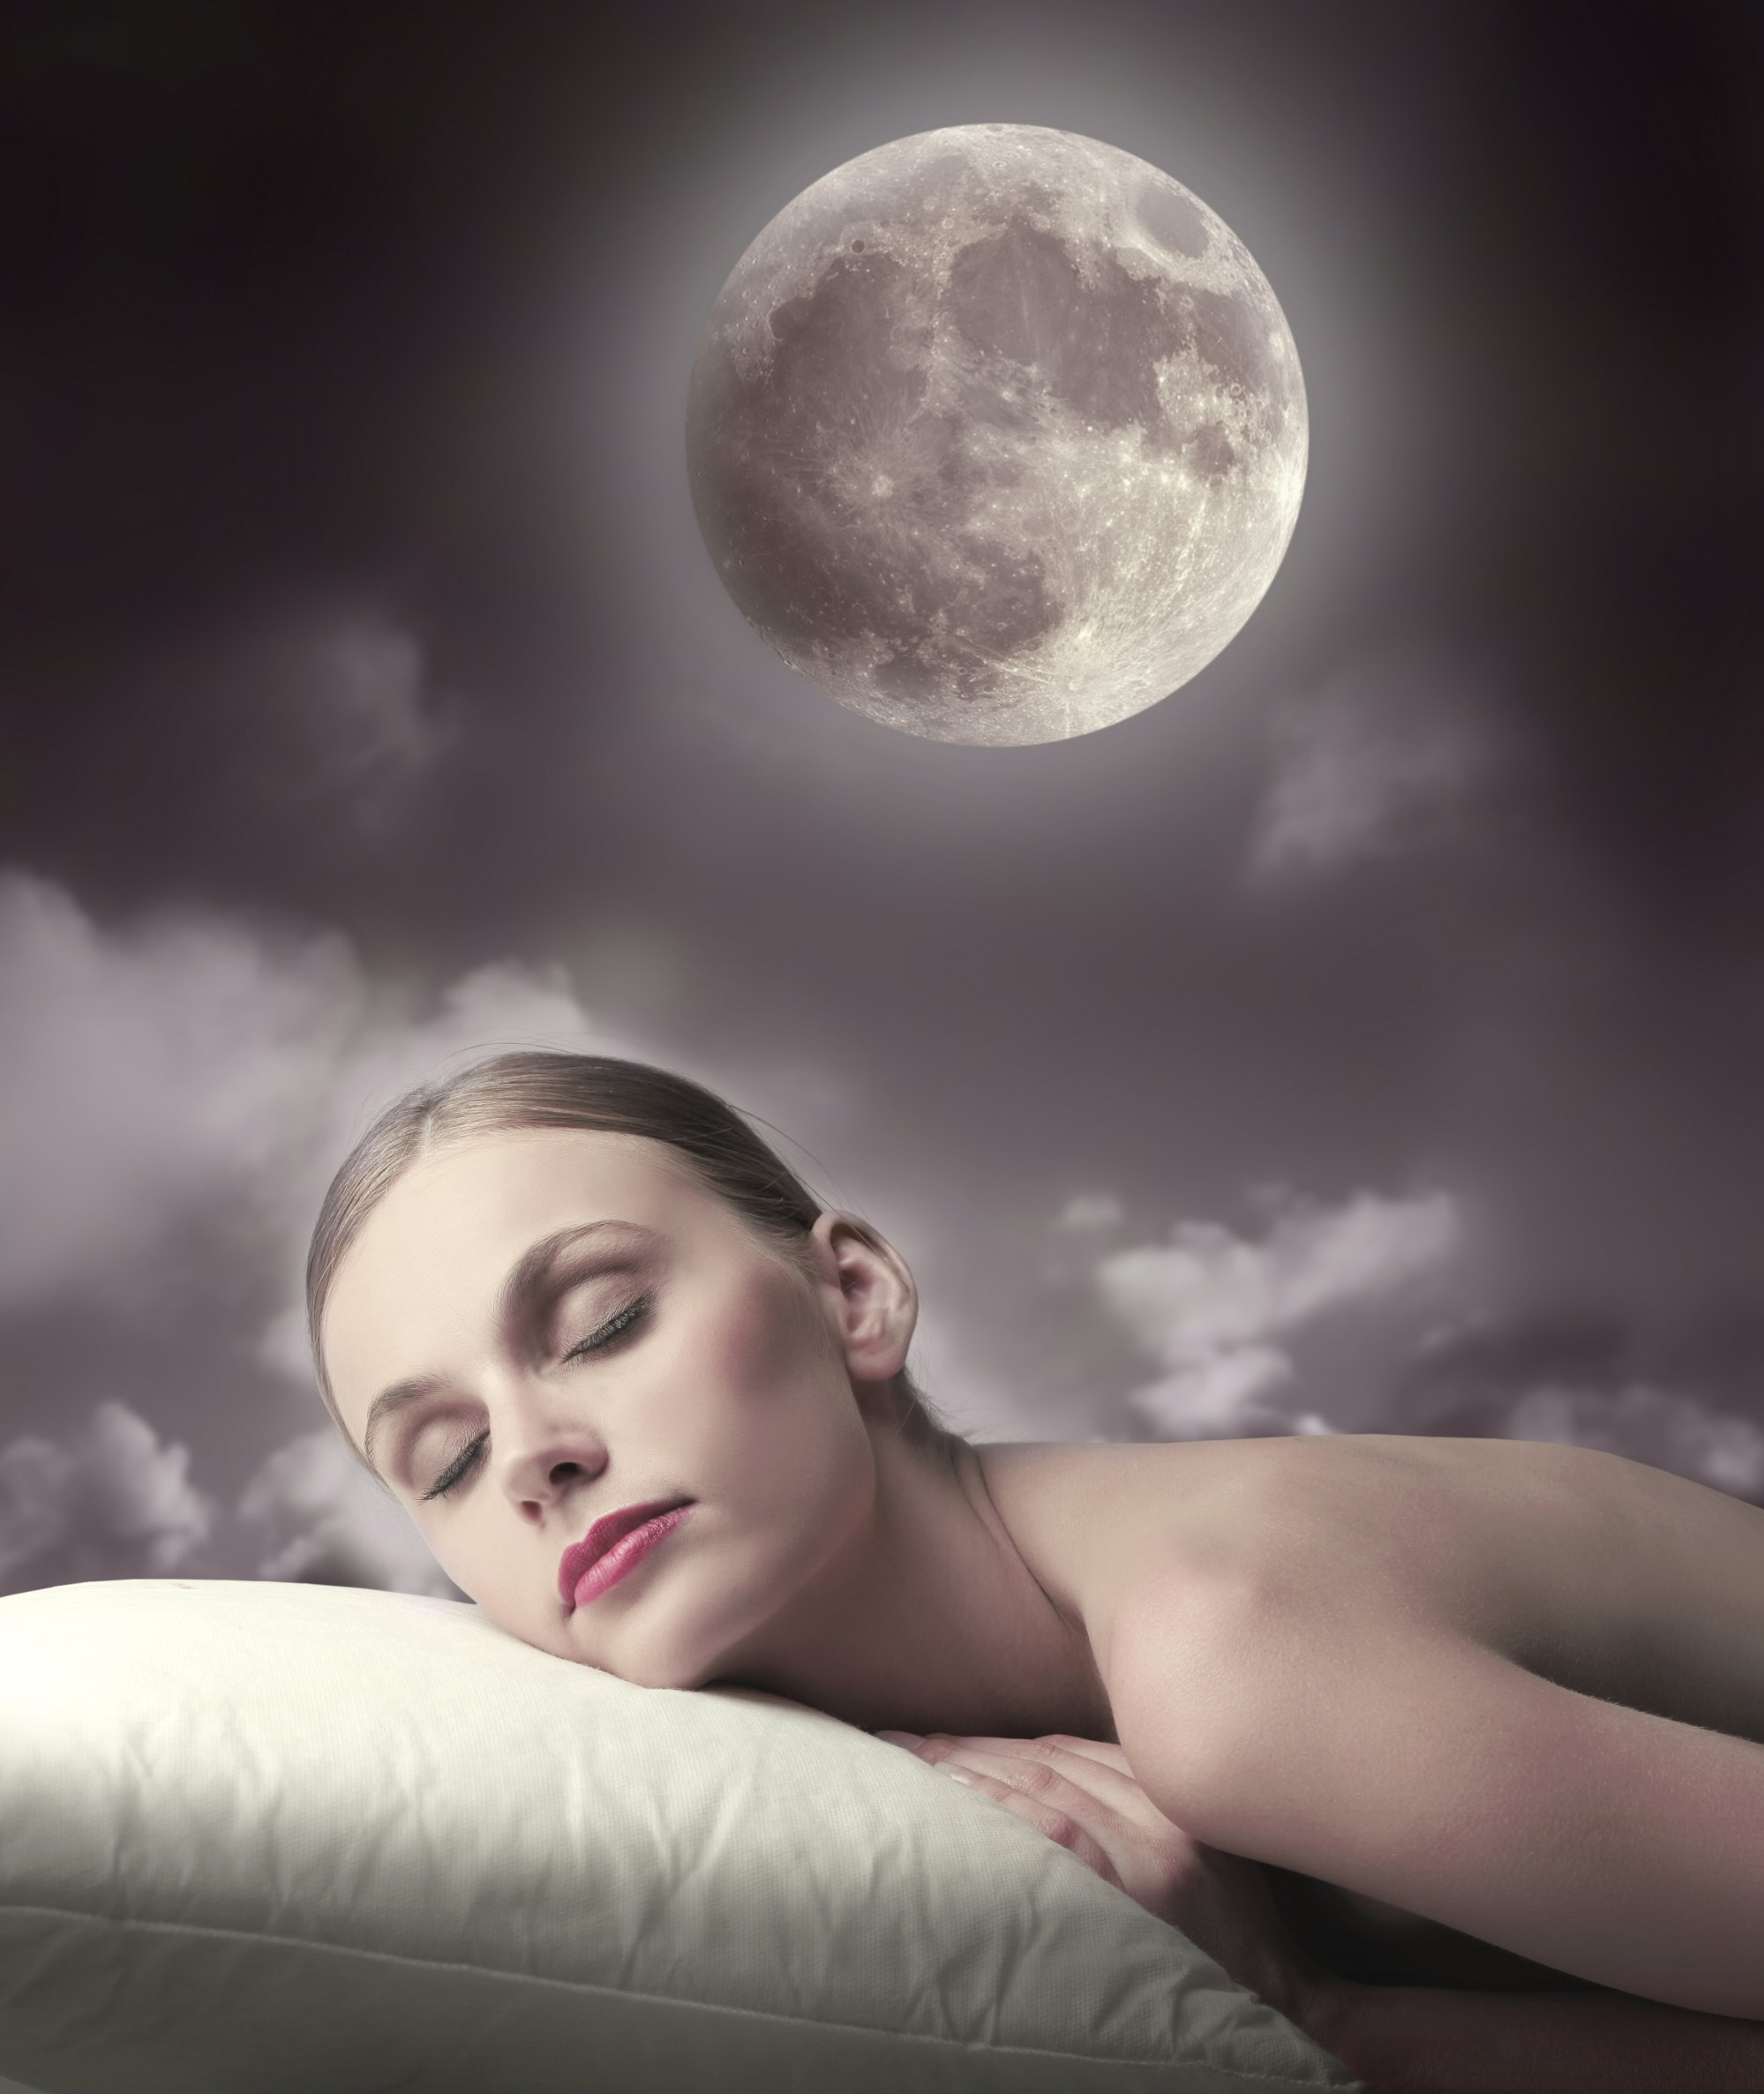 woman sleeping in the moonlight